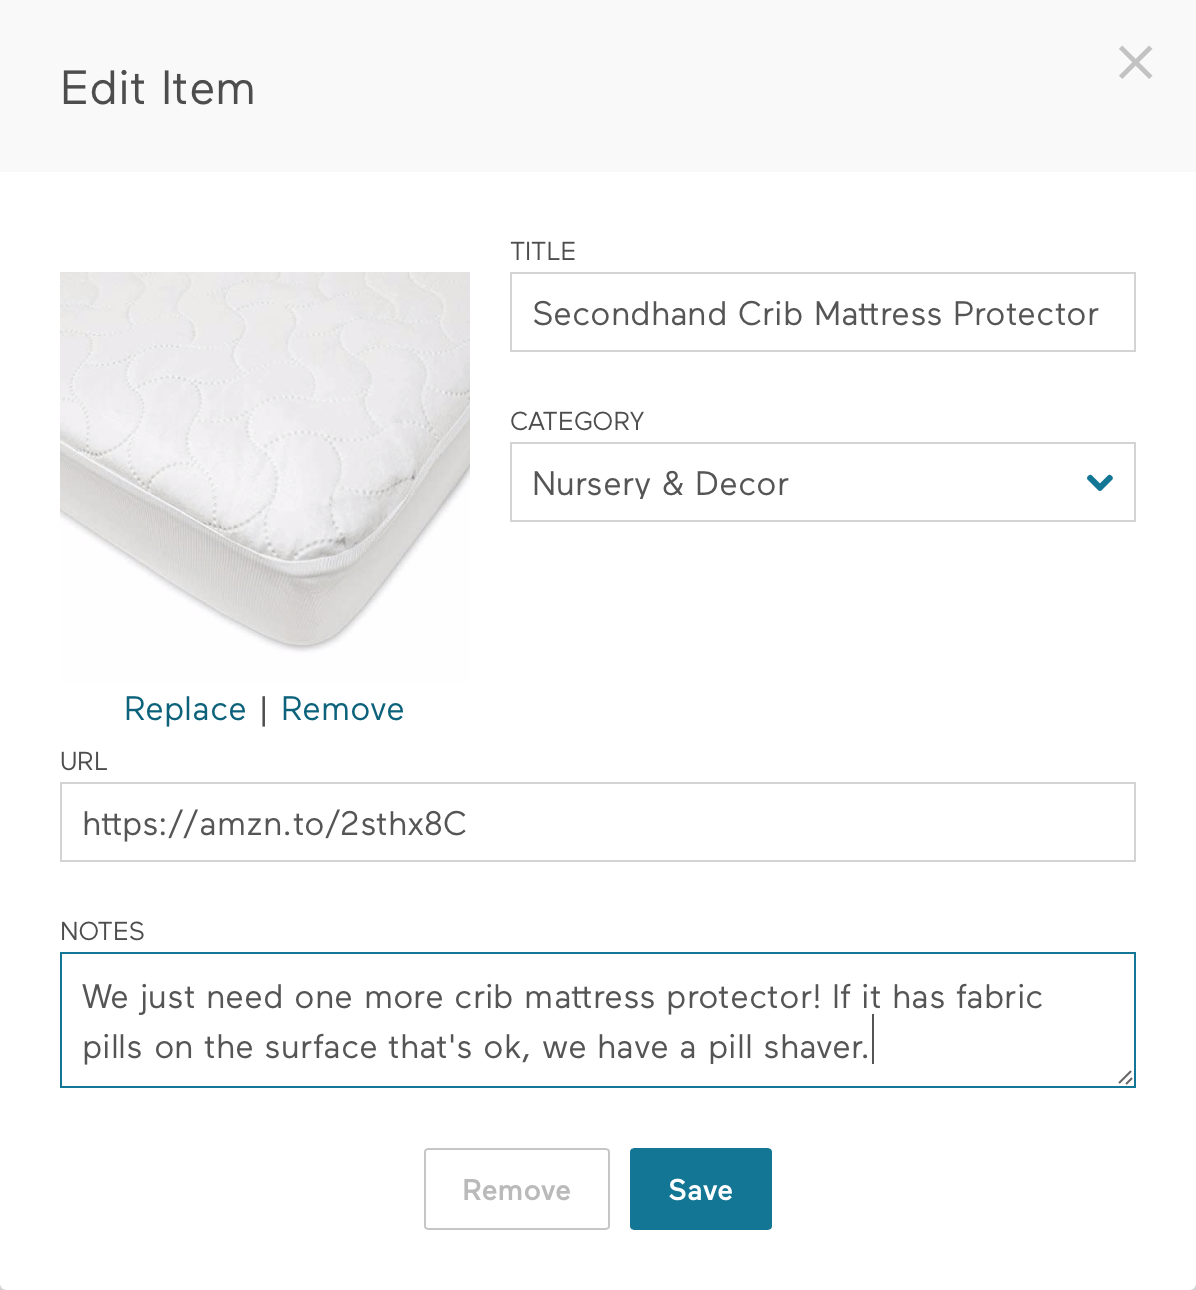 Secondhand baby registry item: Crib mattress protector